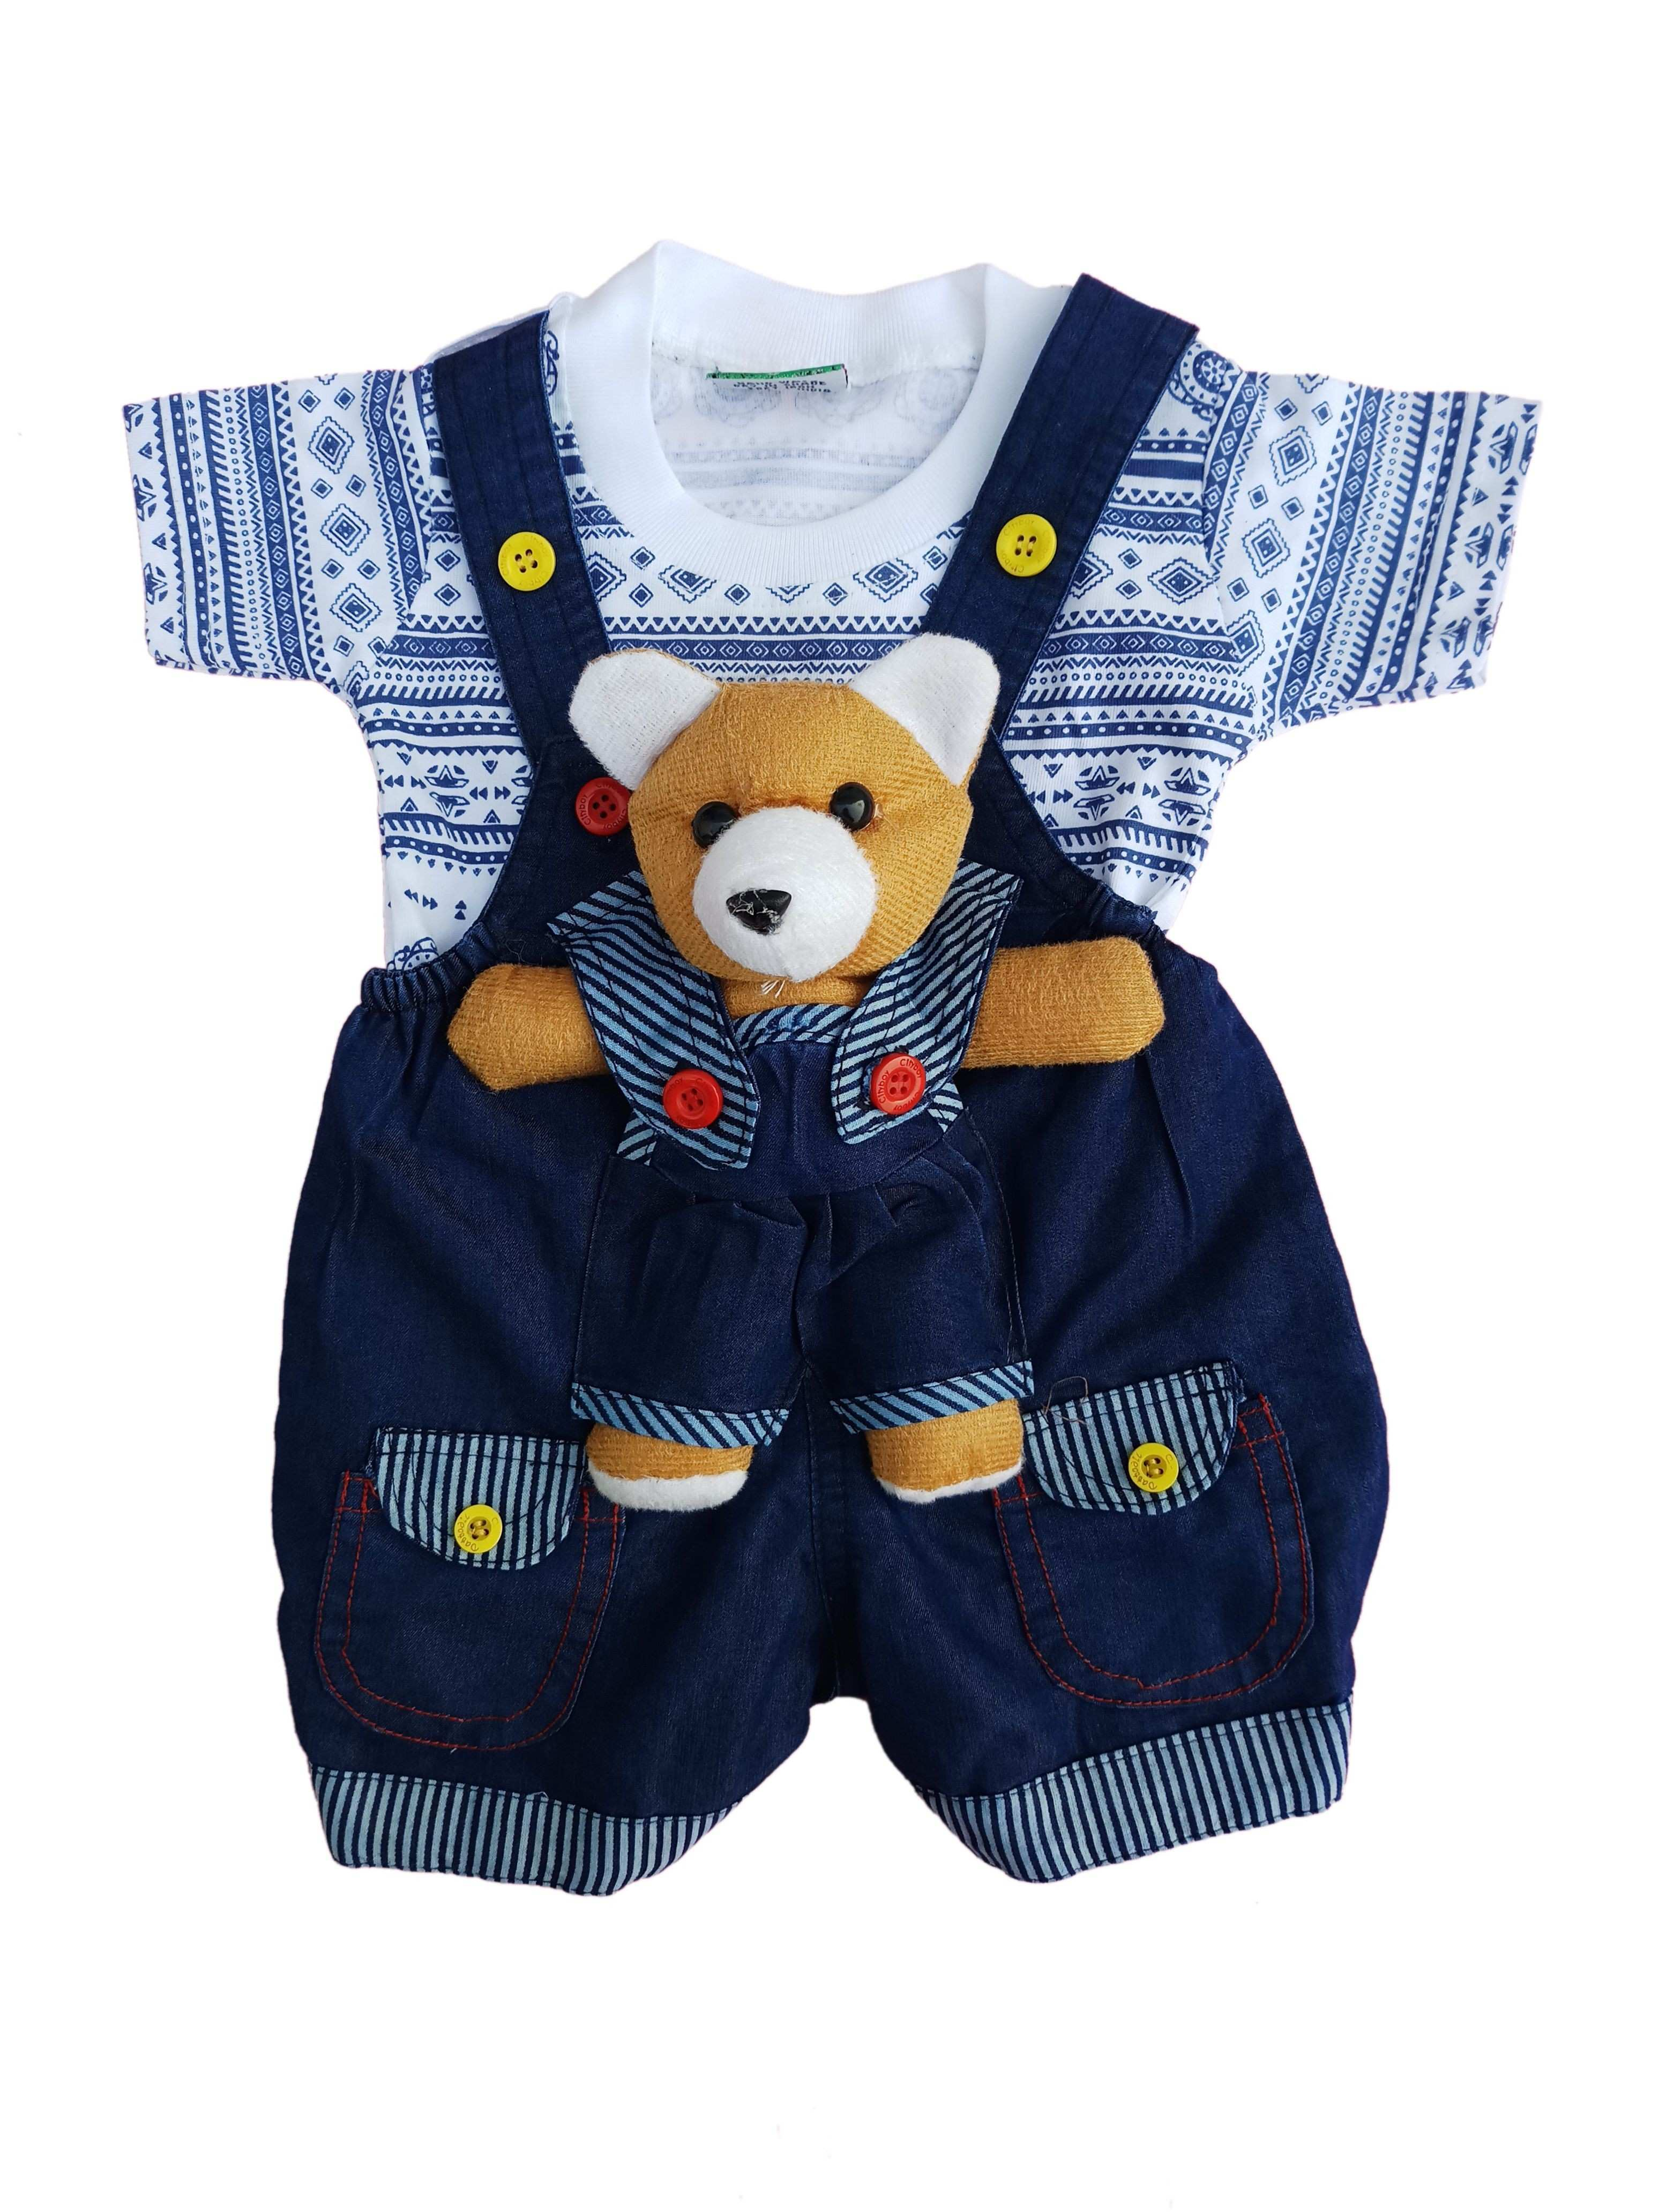 City Boy Kids Wear I Top & Bottom Dungaree Set For Baby Boy Buy